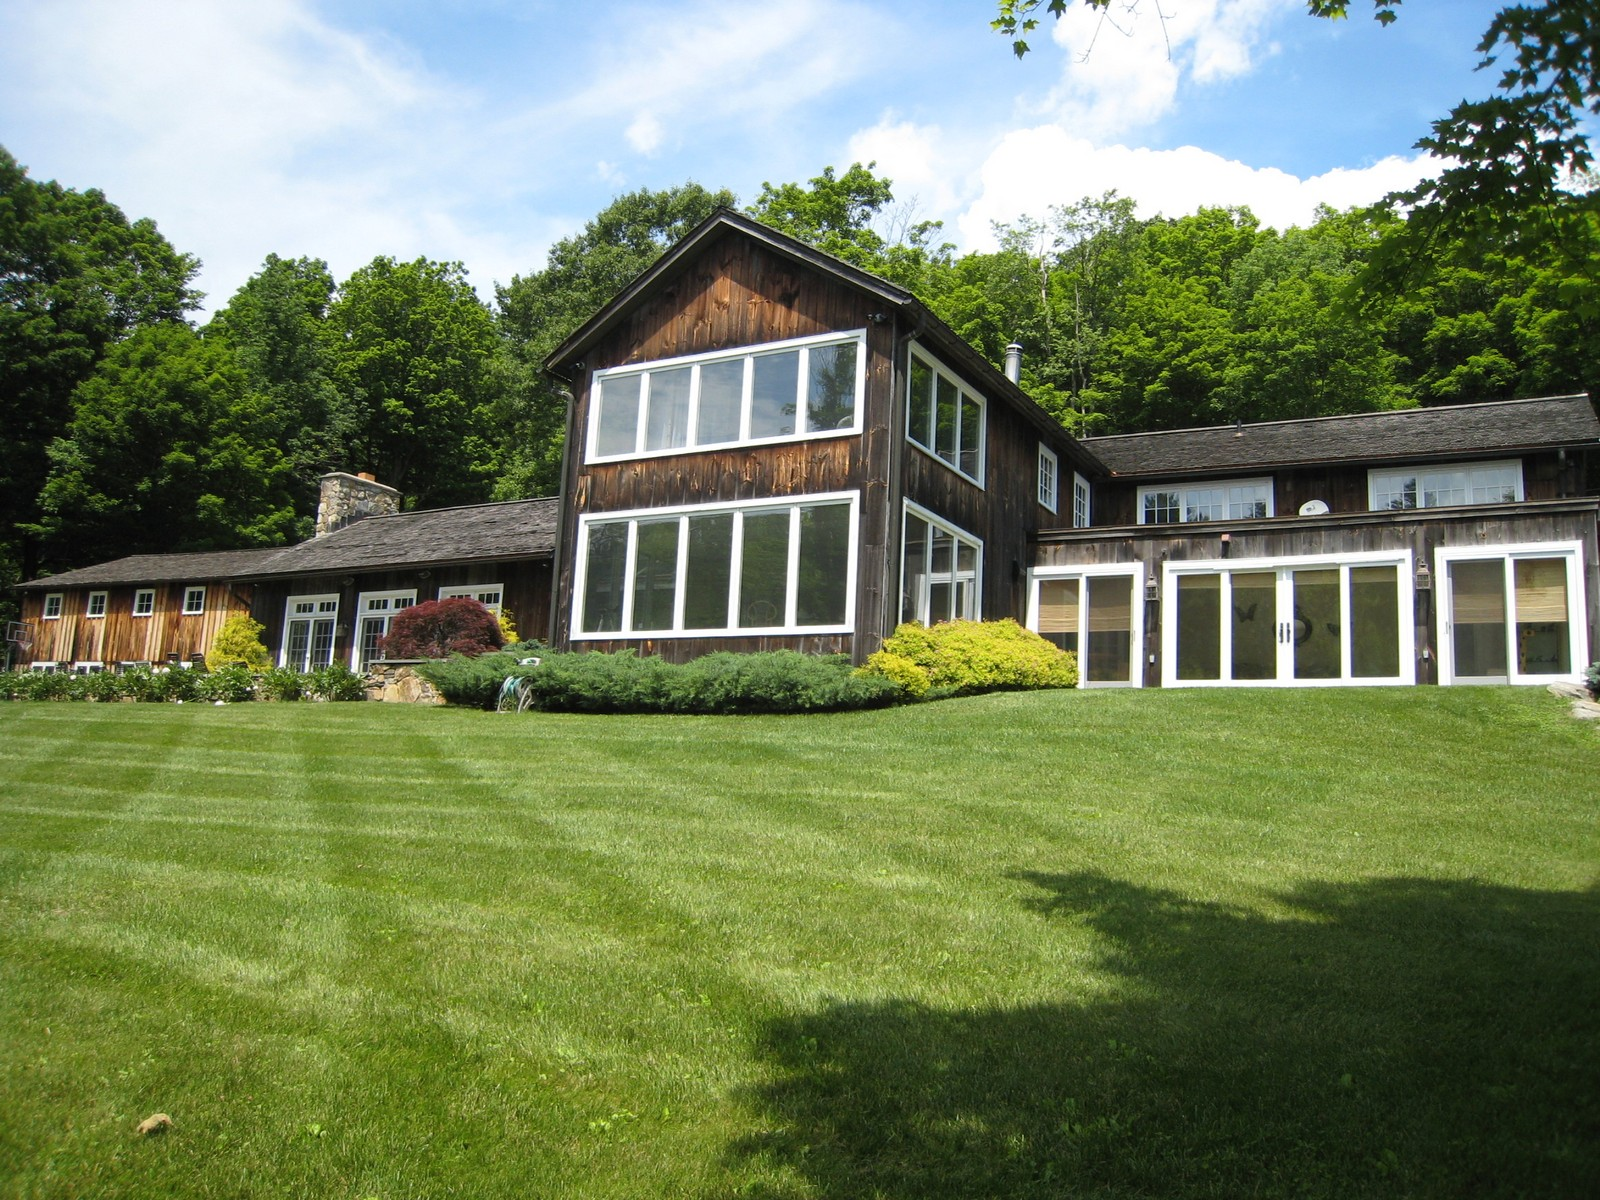 Single Family Home for Sale at Exquisite Luxury Barn 117 Dibble Hill Road Cornwall, Connecticut 06754 United States